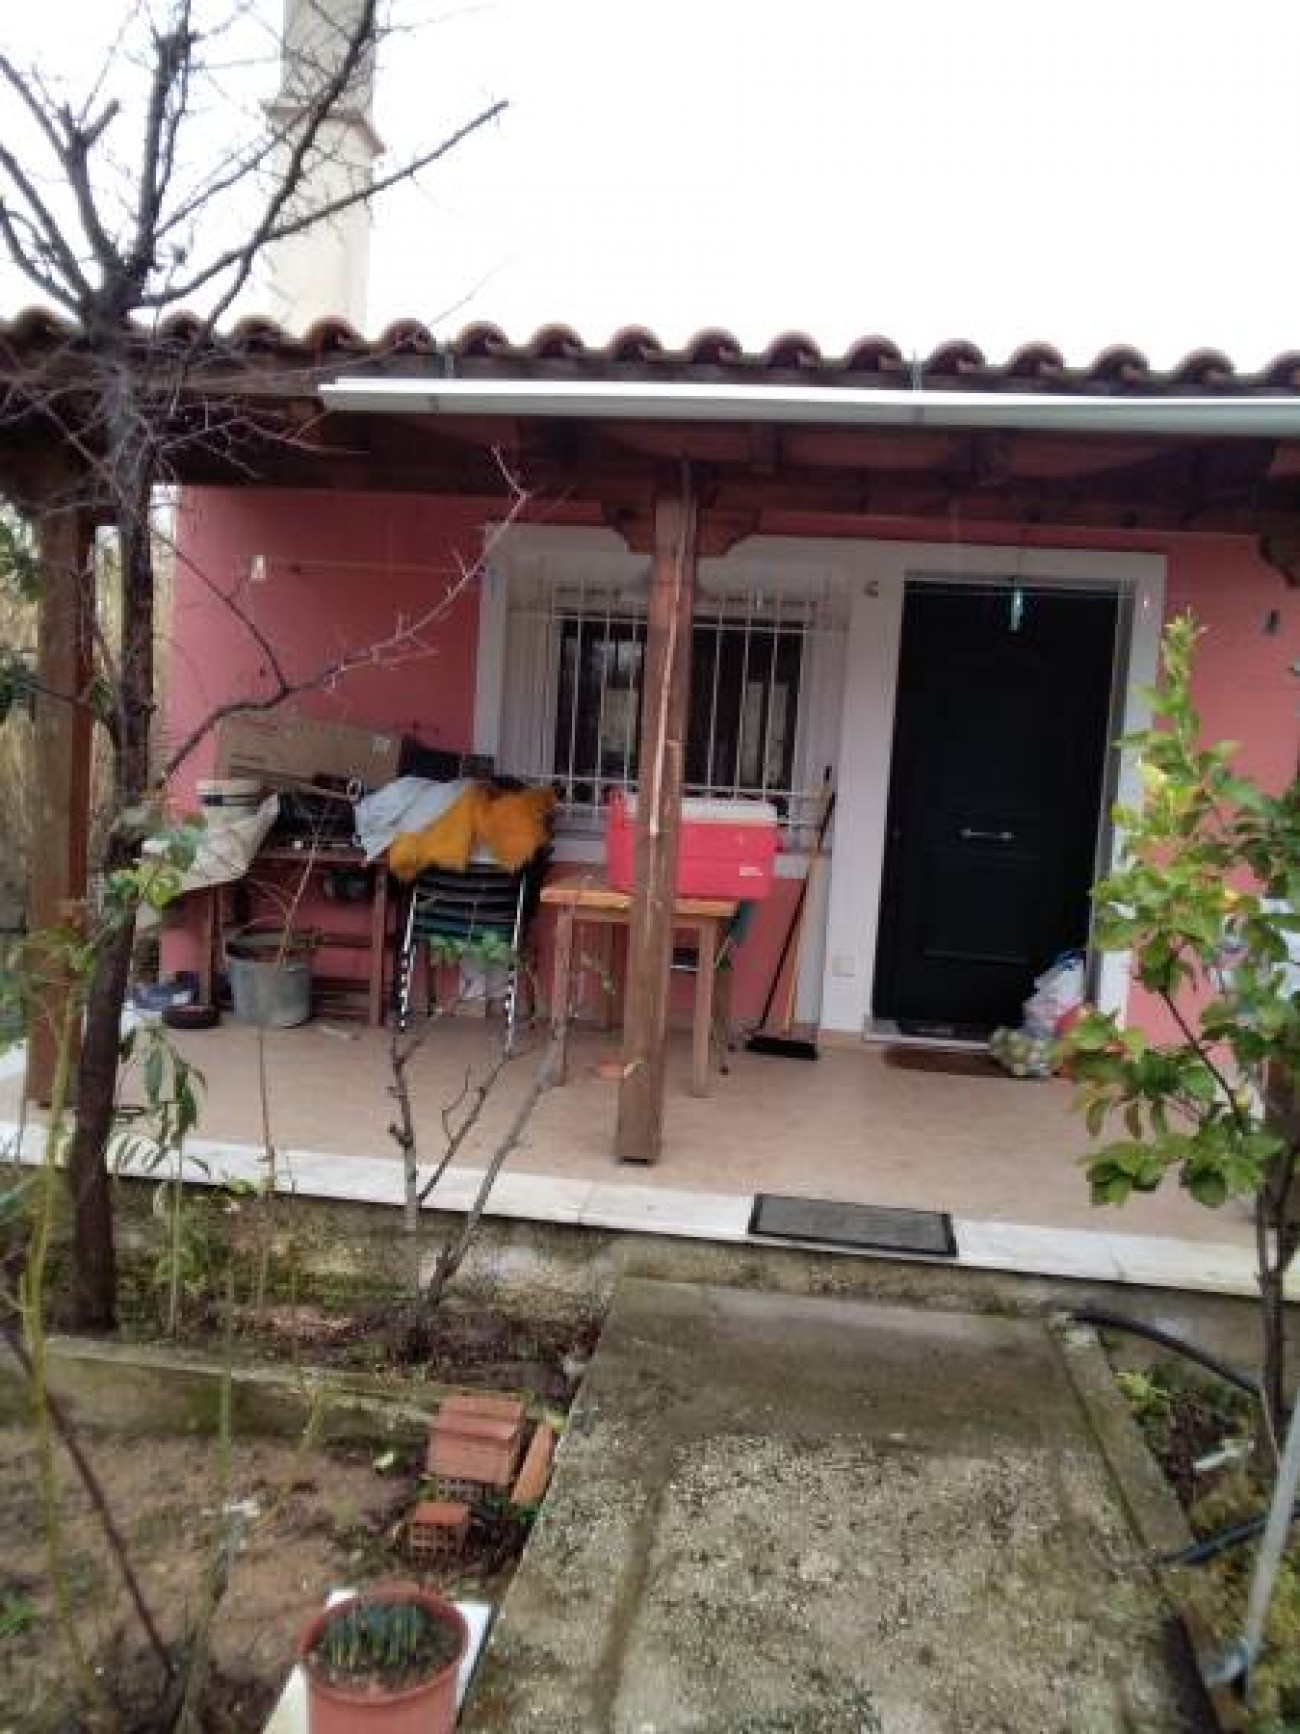 House for Sale in Marousi, North & East Region of Athens, Greece